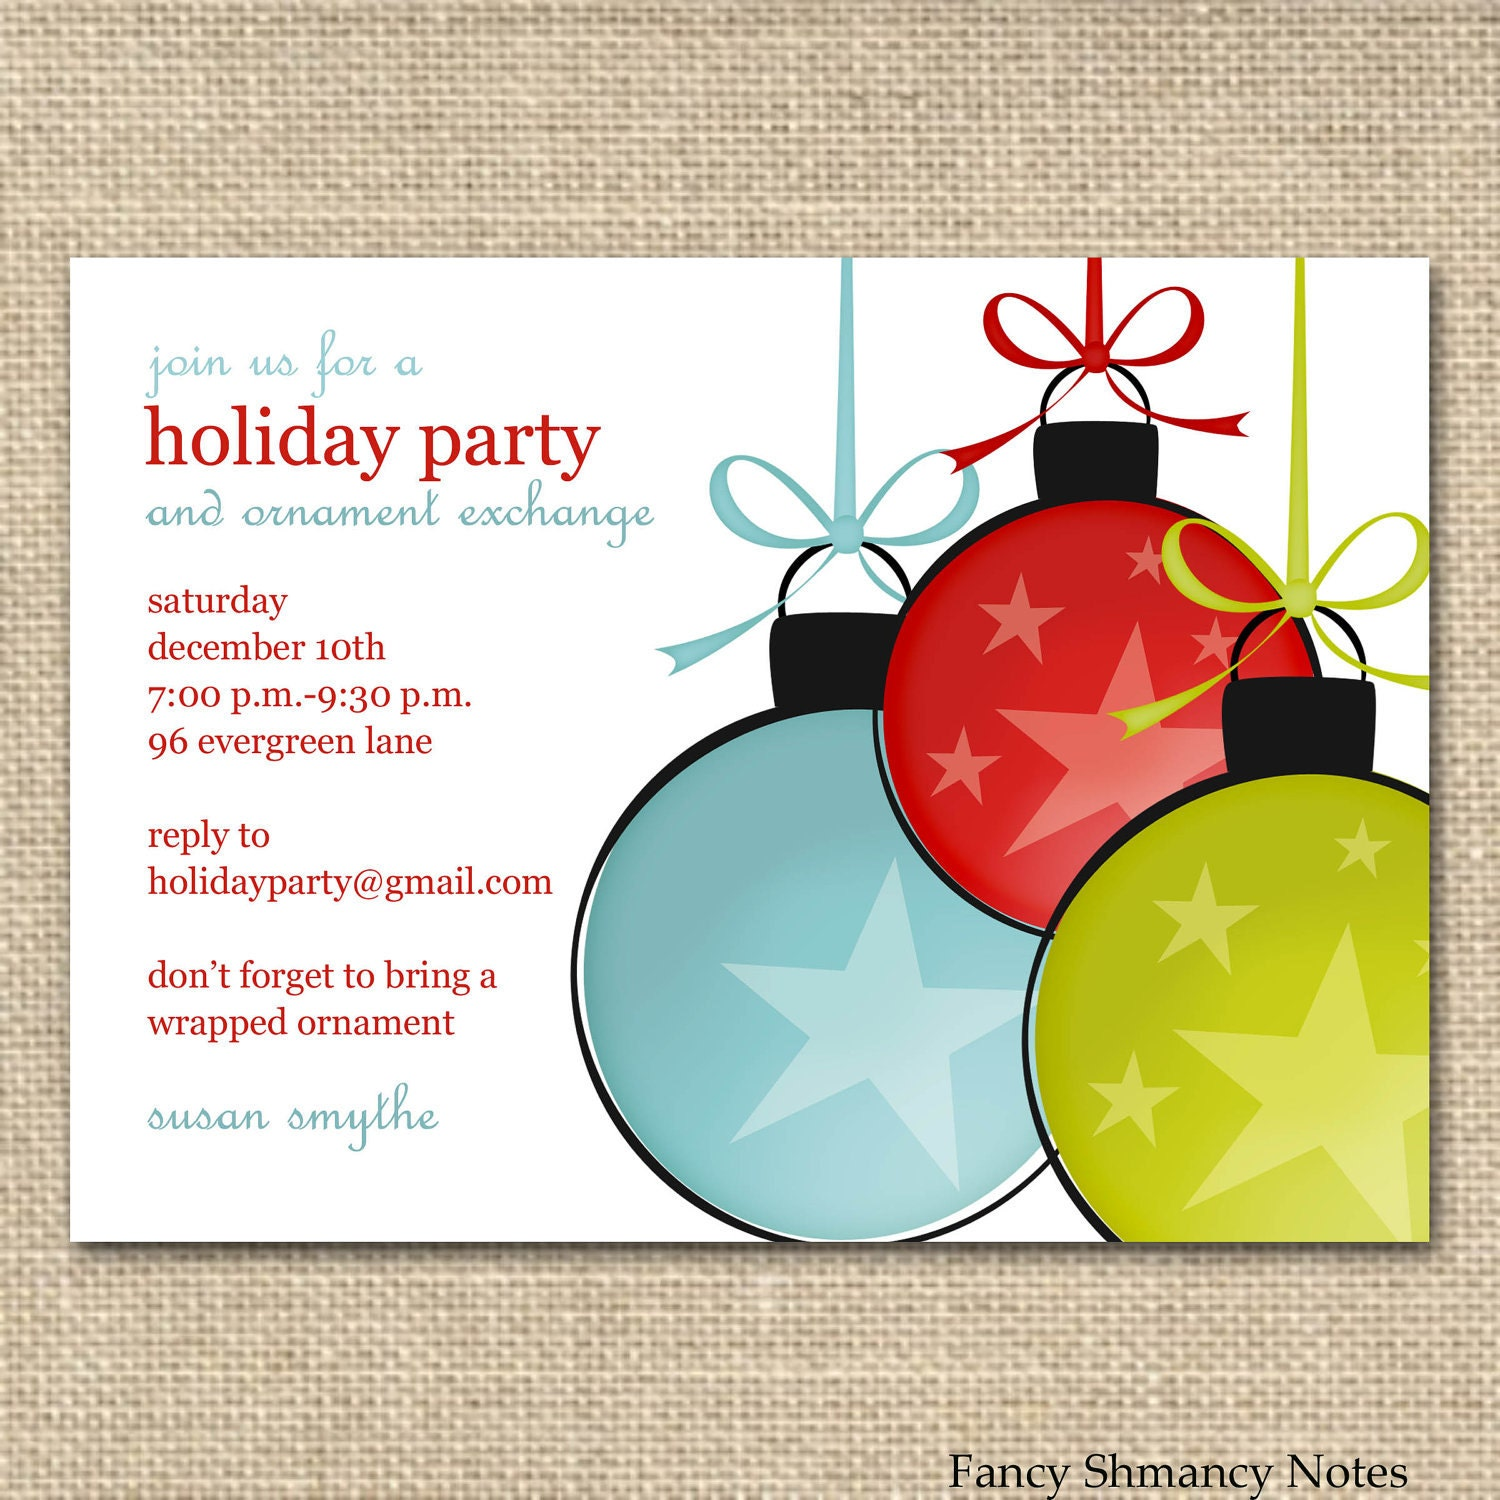 Office Christmas Party Invitation Templates Comchristmas party i1mSO1sn